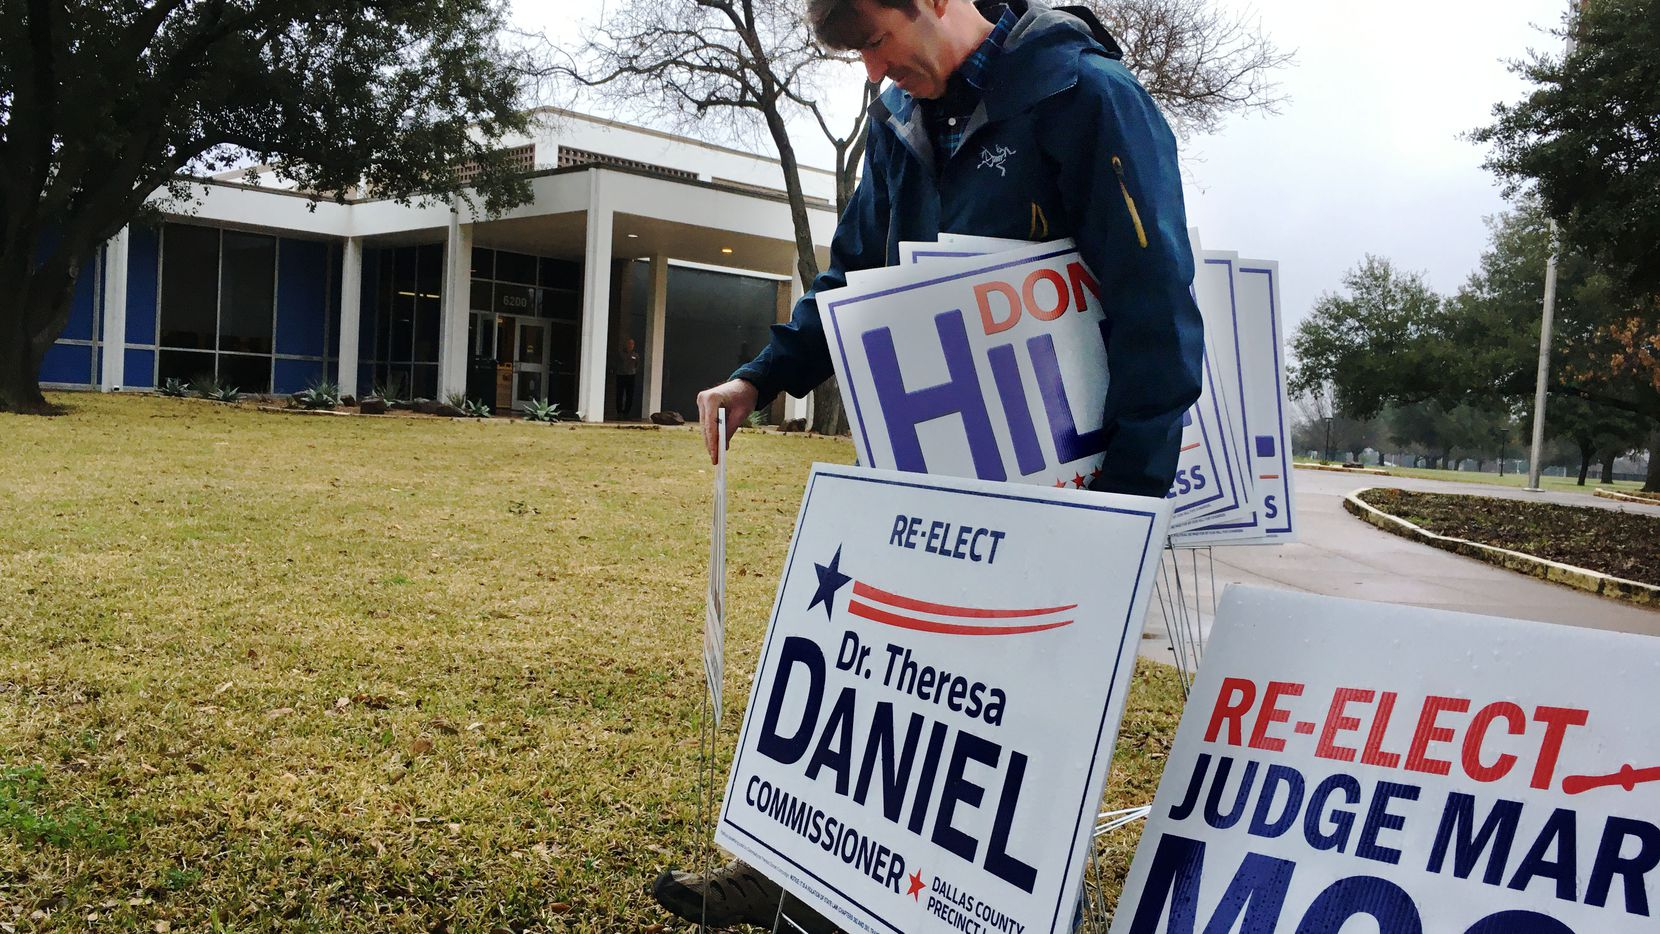 Don Hill, a Republican running for election in Texas' 5th Congressional District of the U.S. House of Representatives, puts out signs for himself at the Samuell Grand Recreation Center early voting location on Feb. 18, the first day of Democratic and Republican primary voting for the 2020 elections.